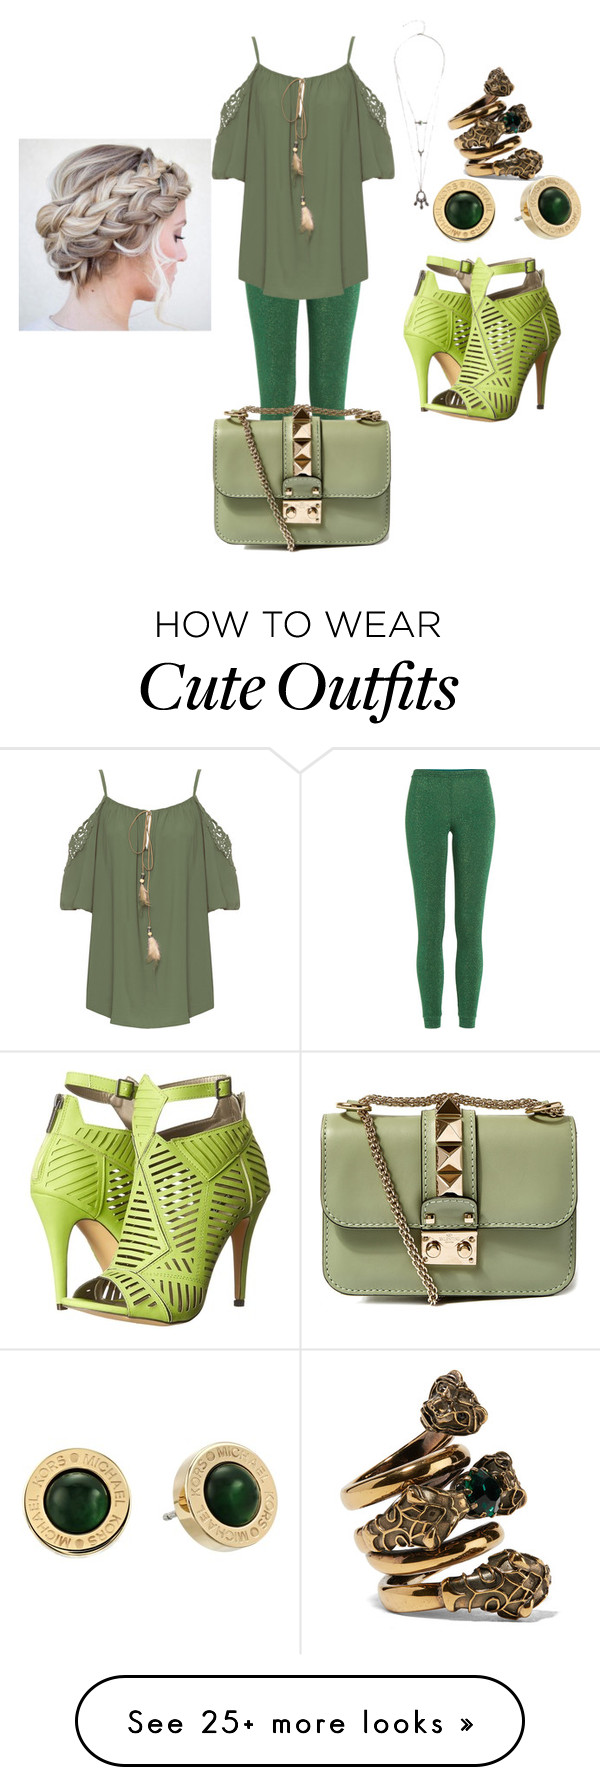 """""""green party in NYC (green outfits contest entry)"""" by hmarbut on Polyvore featuring Missoni, WearAll, Valentino, Michael Antonio, Michael Kors and Gucci"""